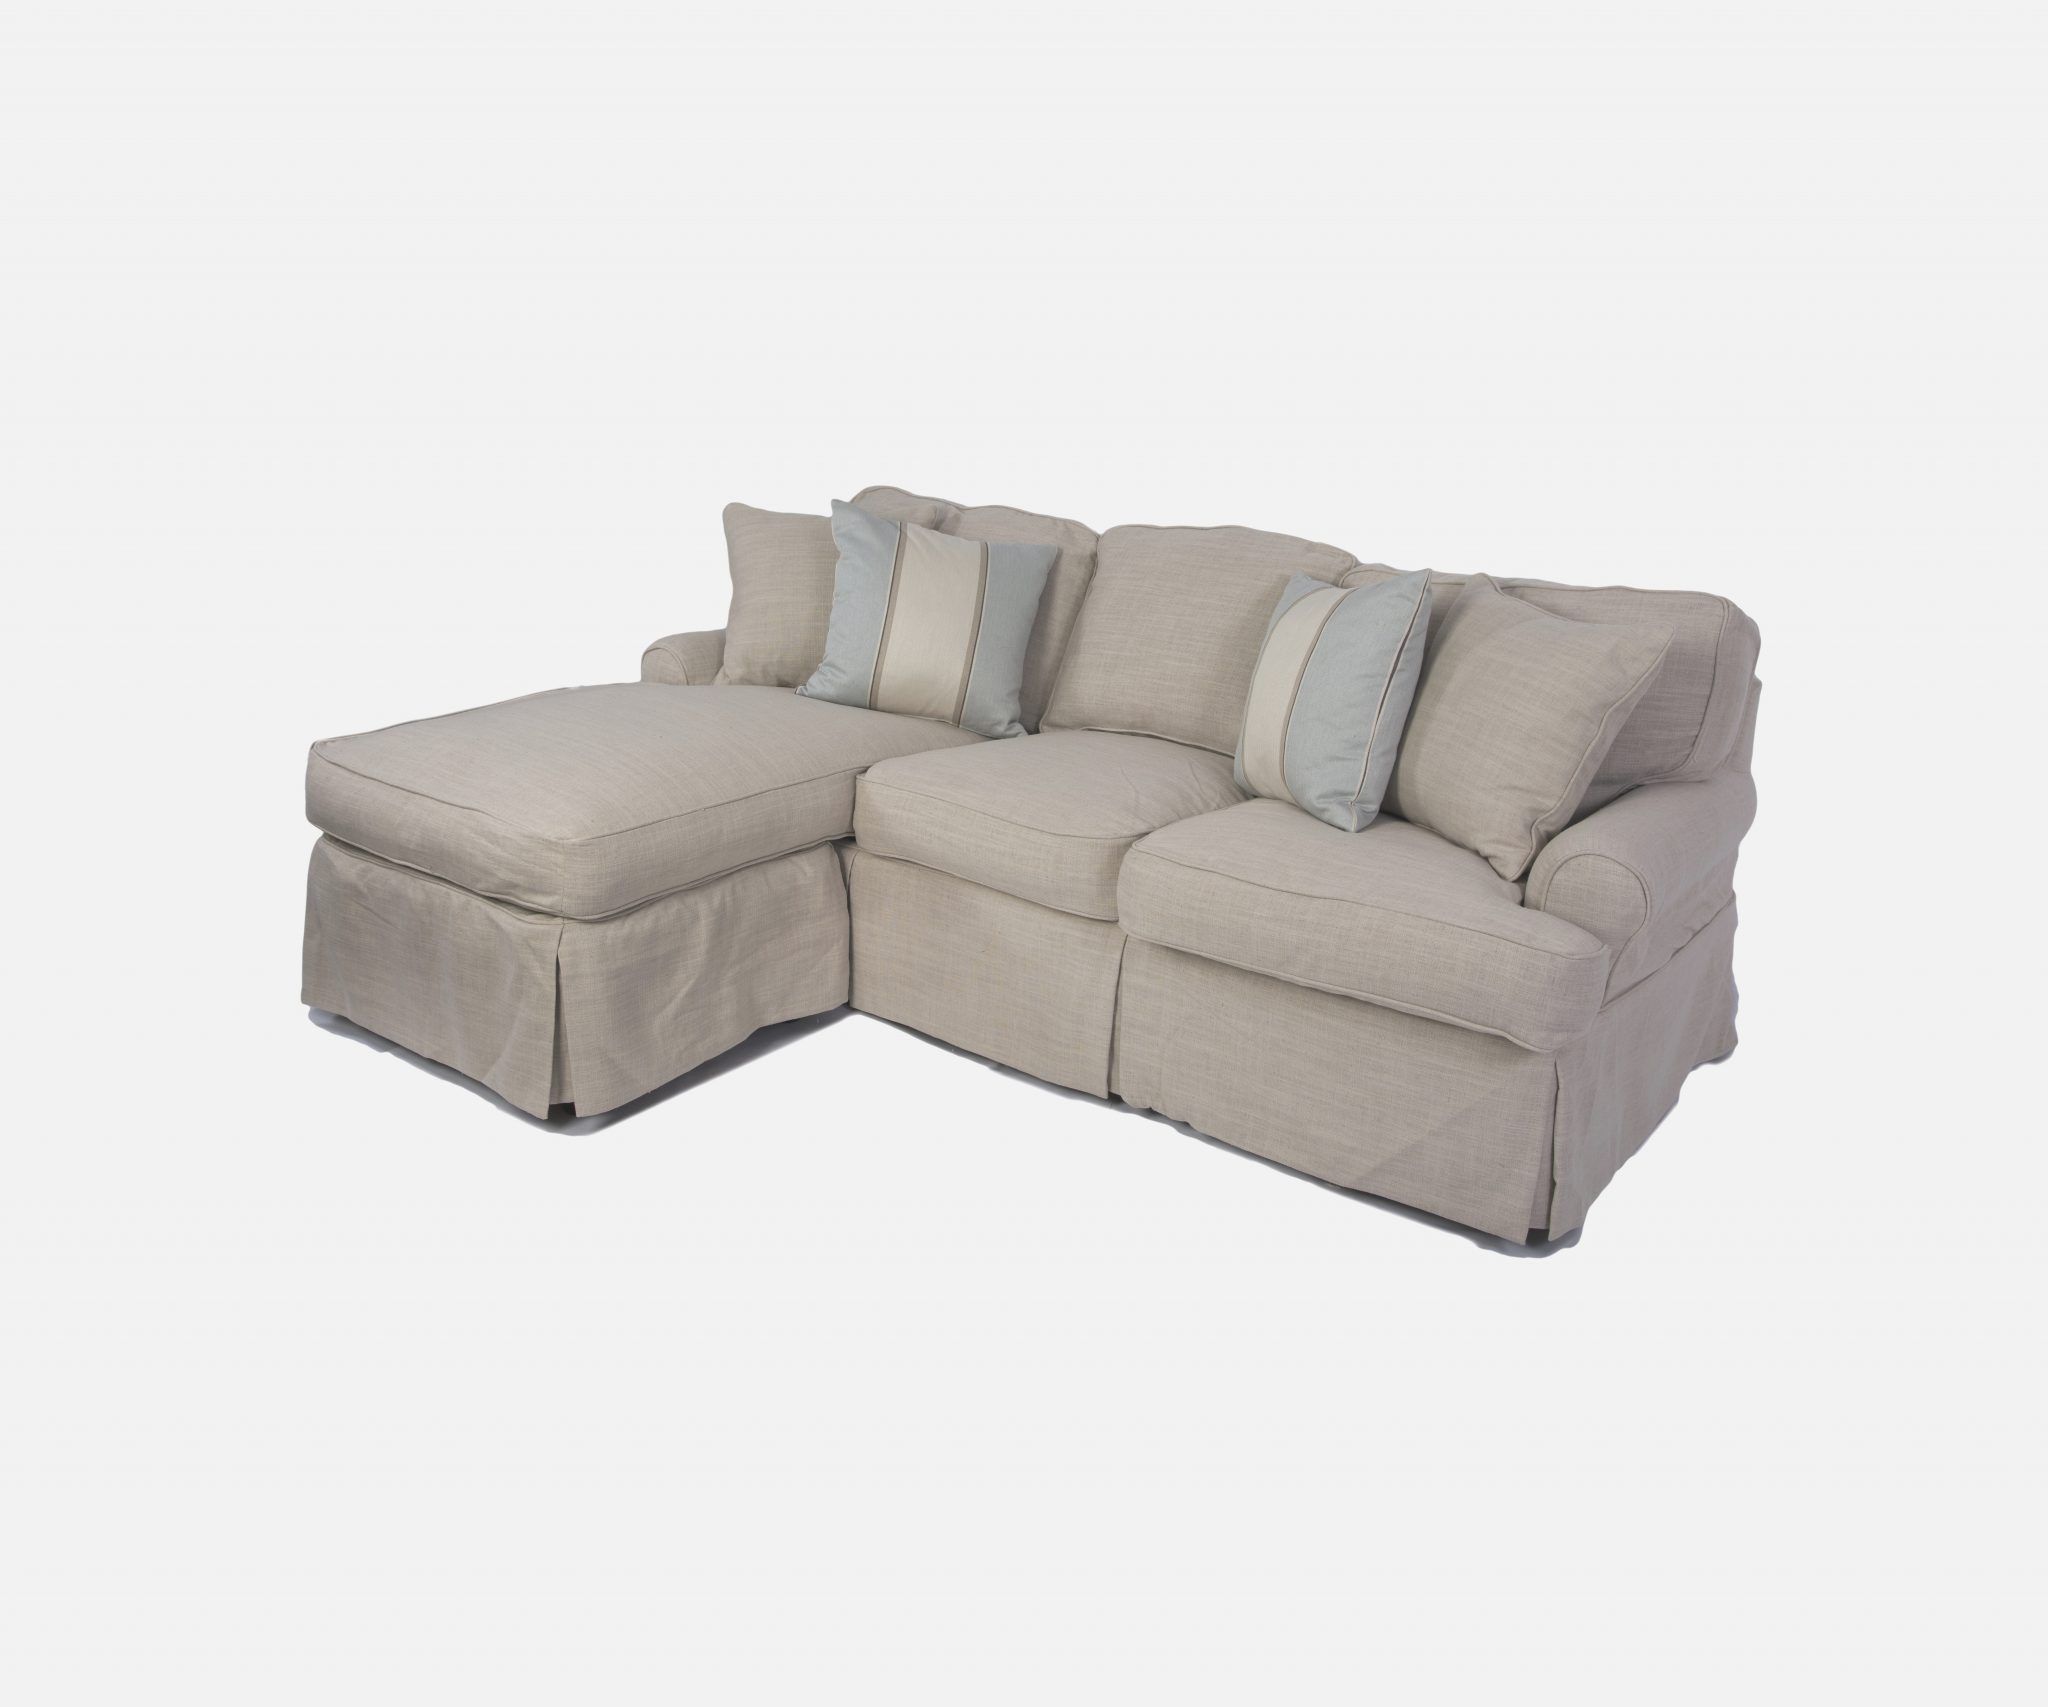 Fine Slipcover Sectional Sofa With Chaise 3 Piece Sectional Andrewgaddart Wooden Chair Designs For Living Room Andrewgaddartcom